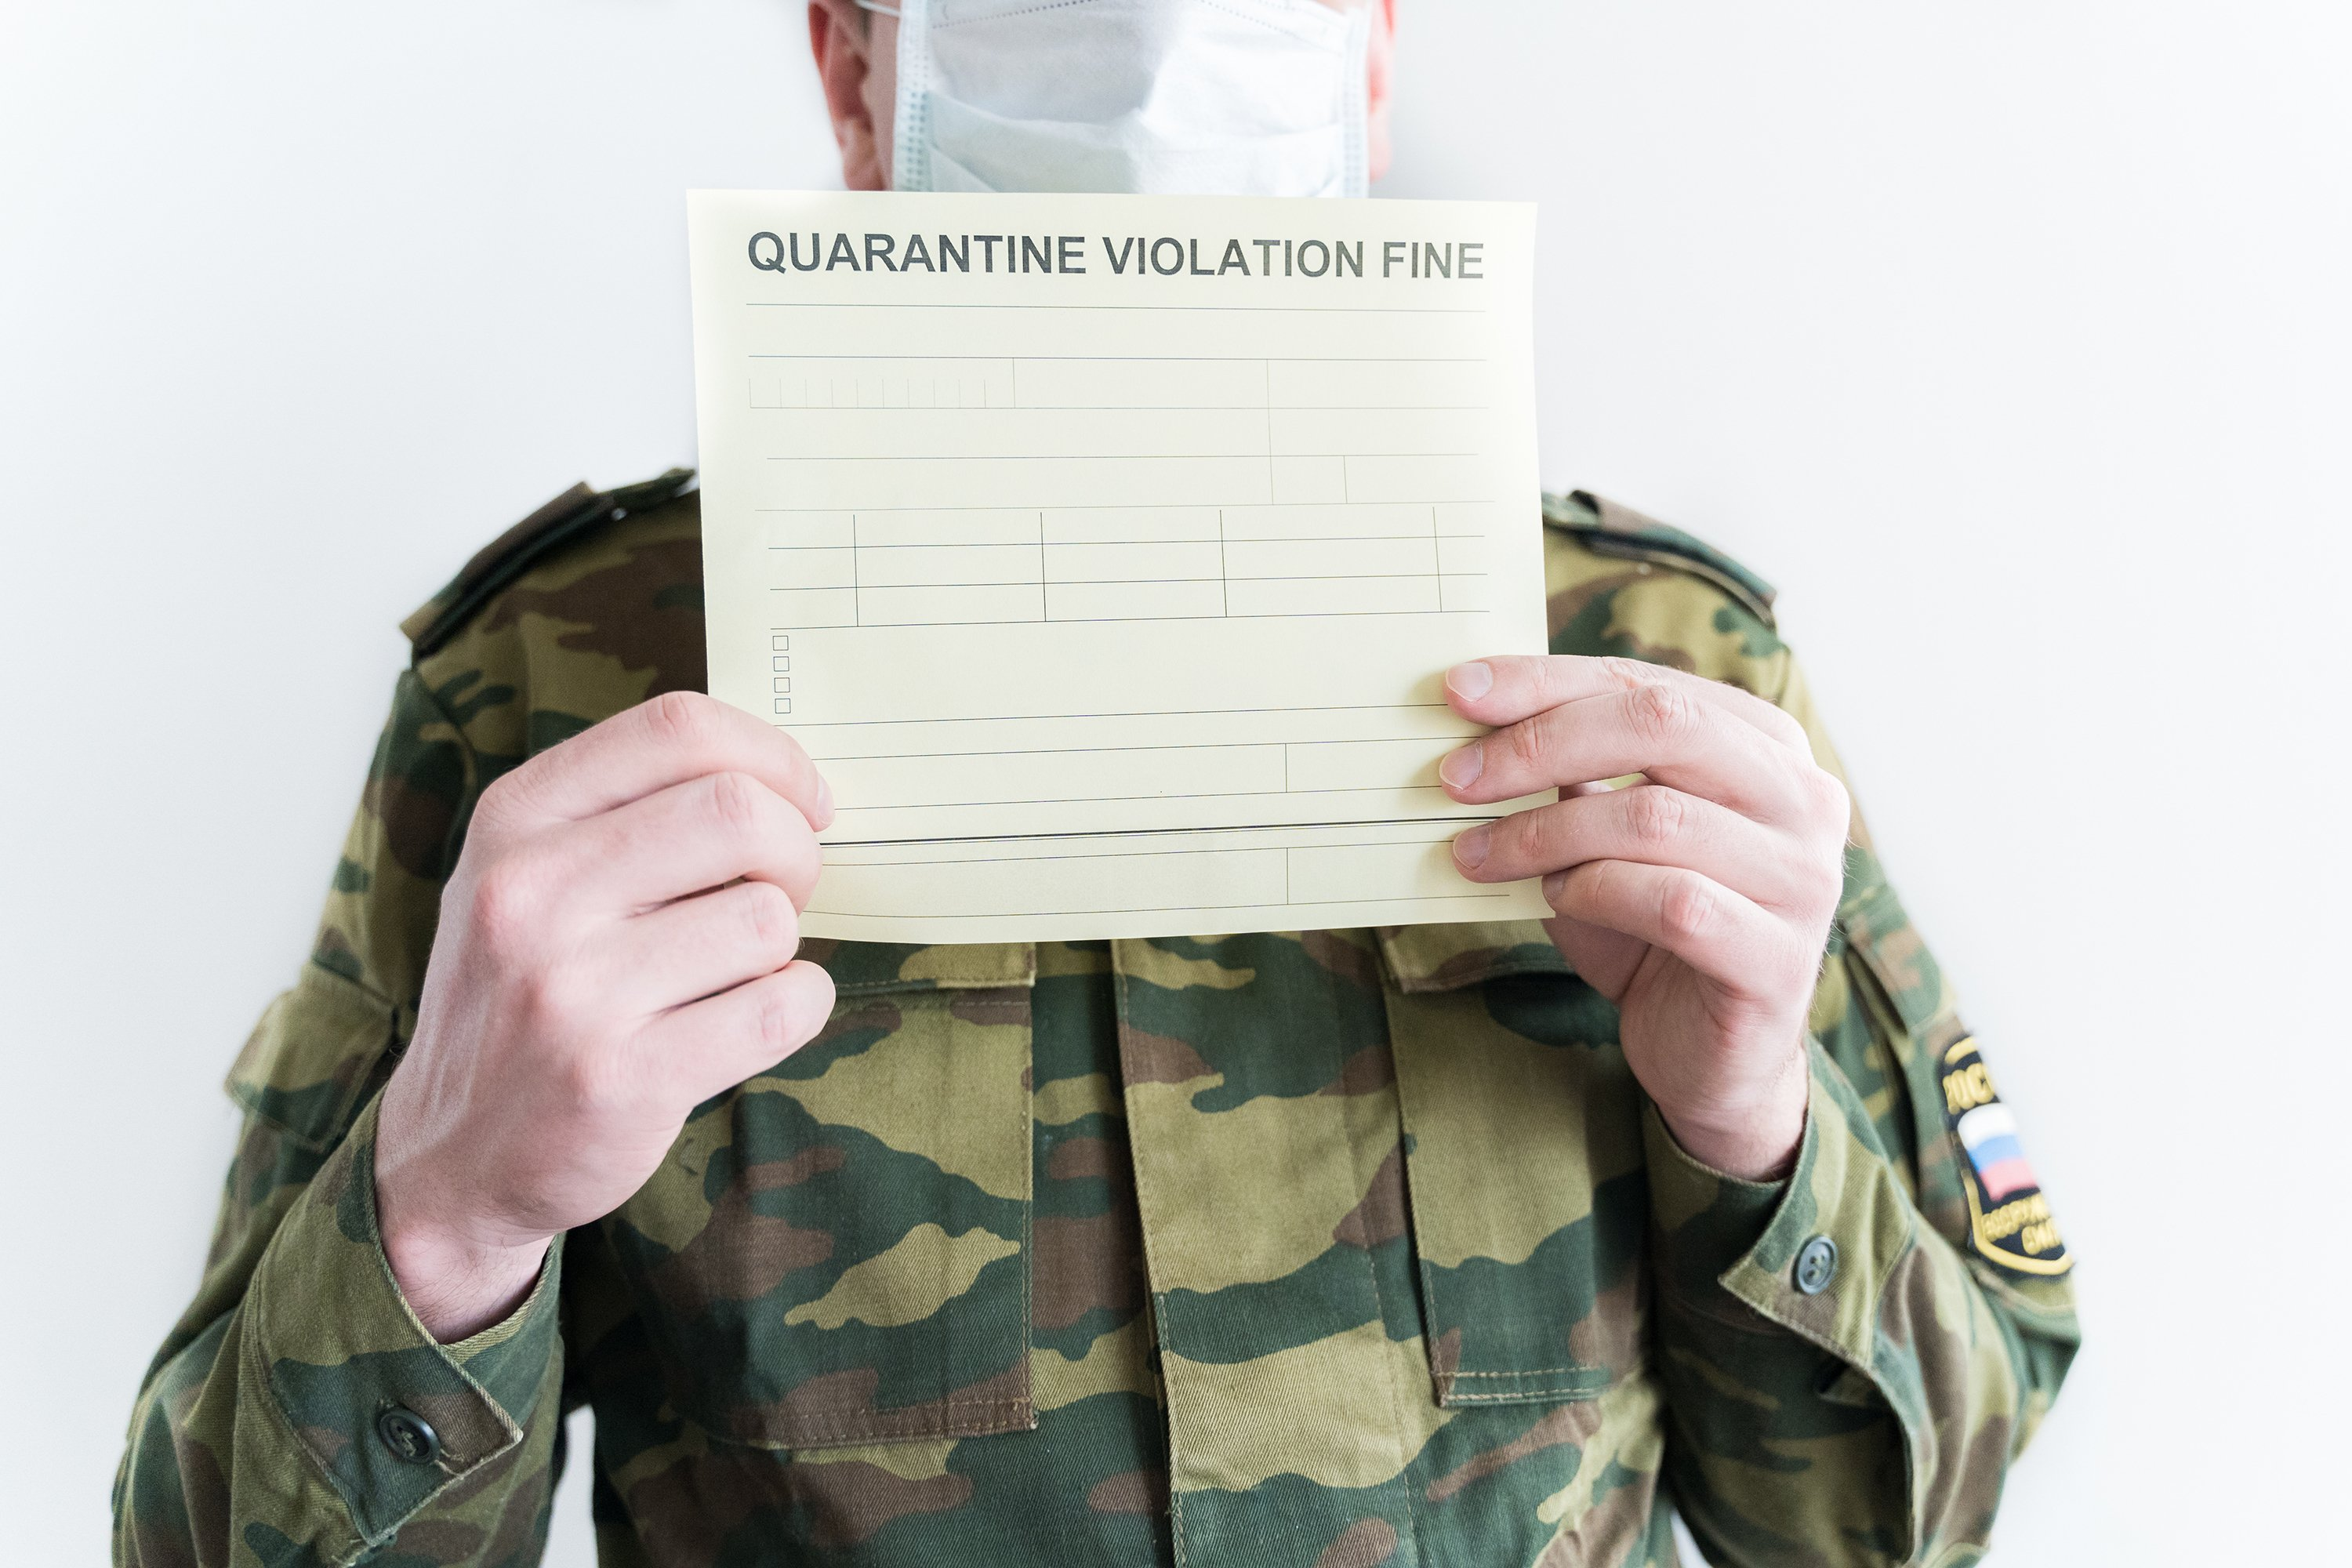 Police officer with self-isolation violation fine. Face mask example image 1